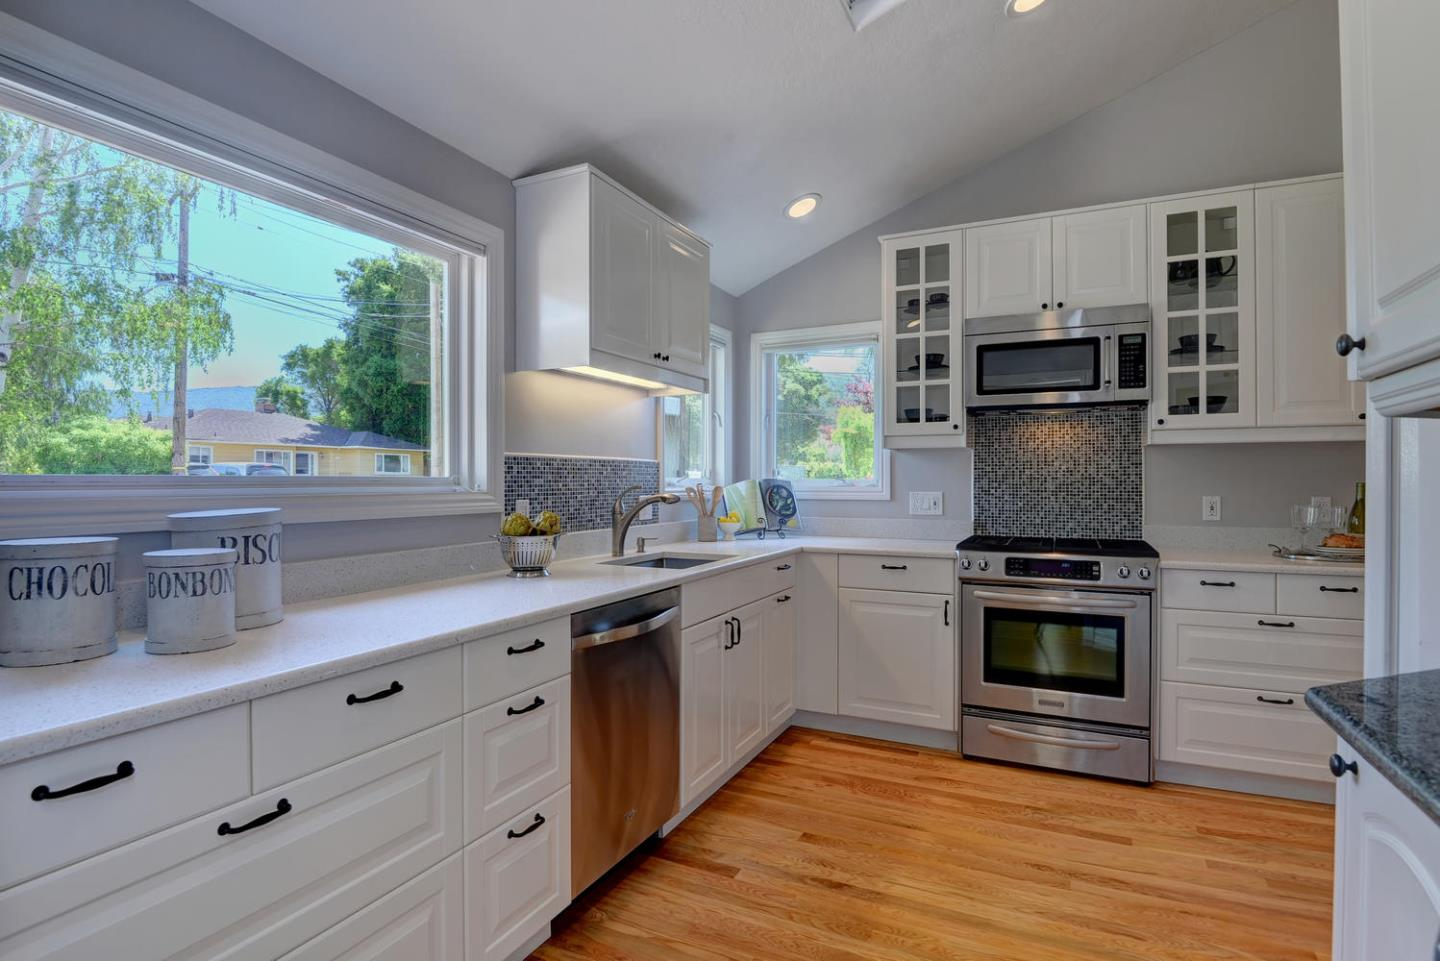 Additional photo for property listing at 481 San Luis Ave  LOS ALTOS, CALIFORNIA 94024